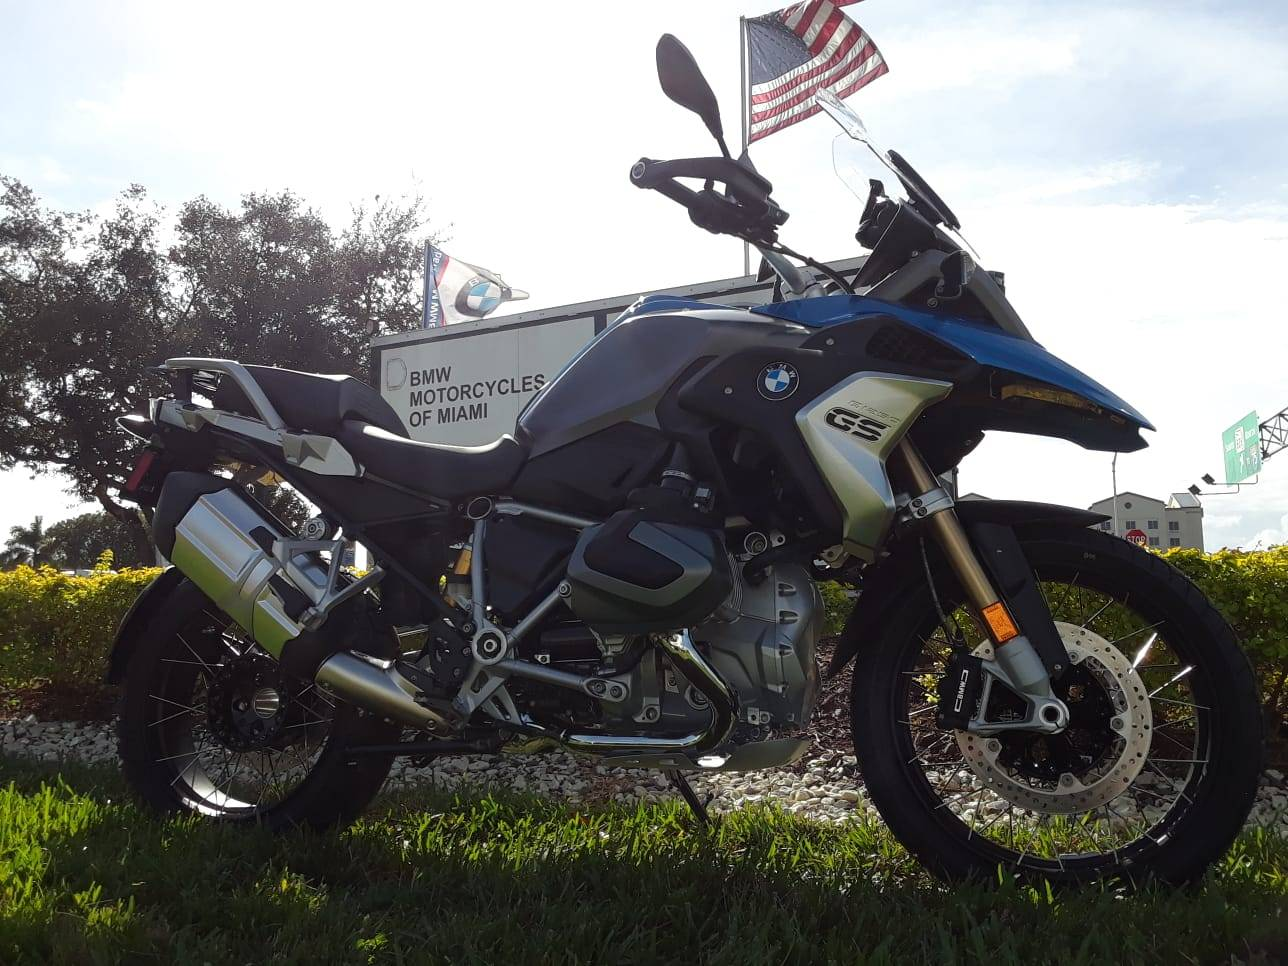 New 2019 BMW R 1250 GS for sale, New BMW R 1250GS, BMW R1250GS for sale, 1250GS, R1250GS, BMW Motorcycles of Miami, Motorcycles of Miami. Motorcycles Miami - Photo 17